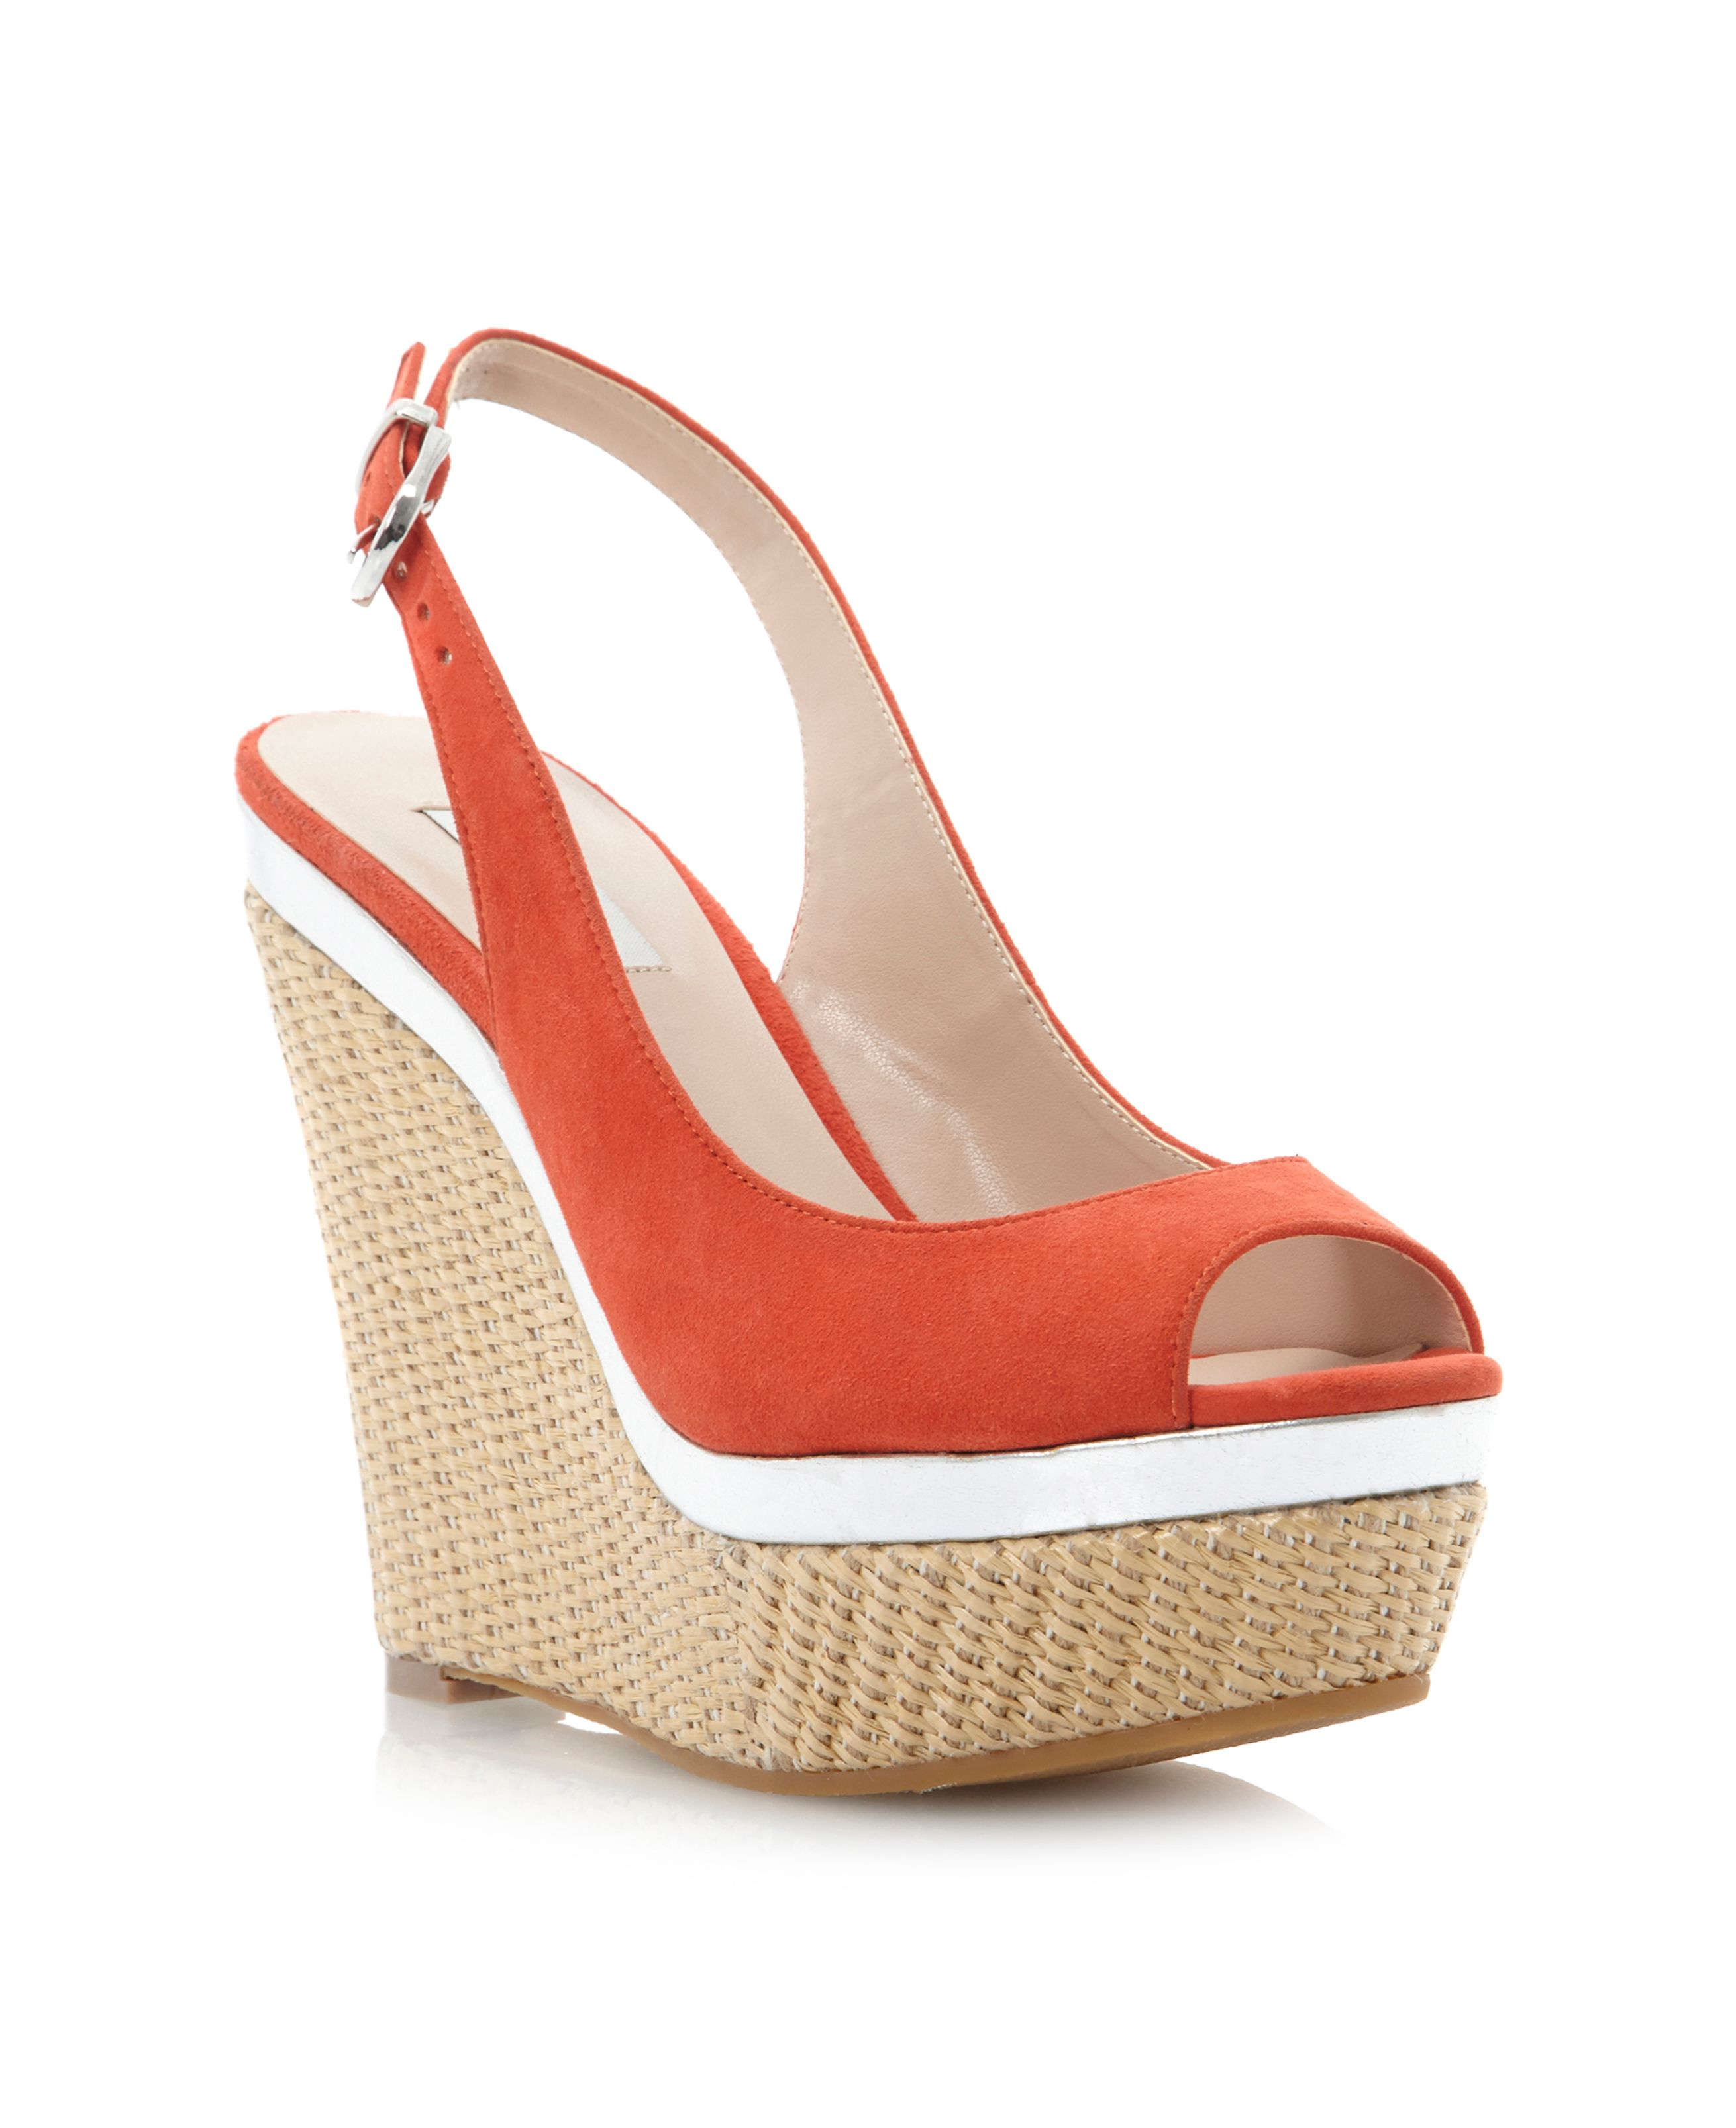 Huntington platform wedge sandals